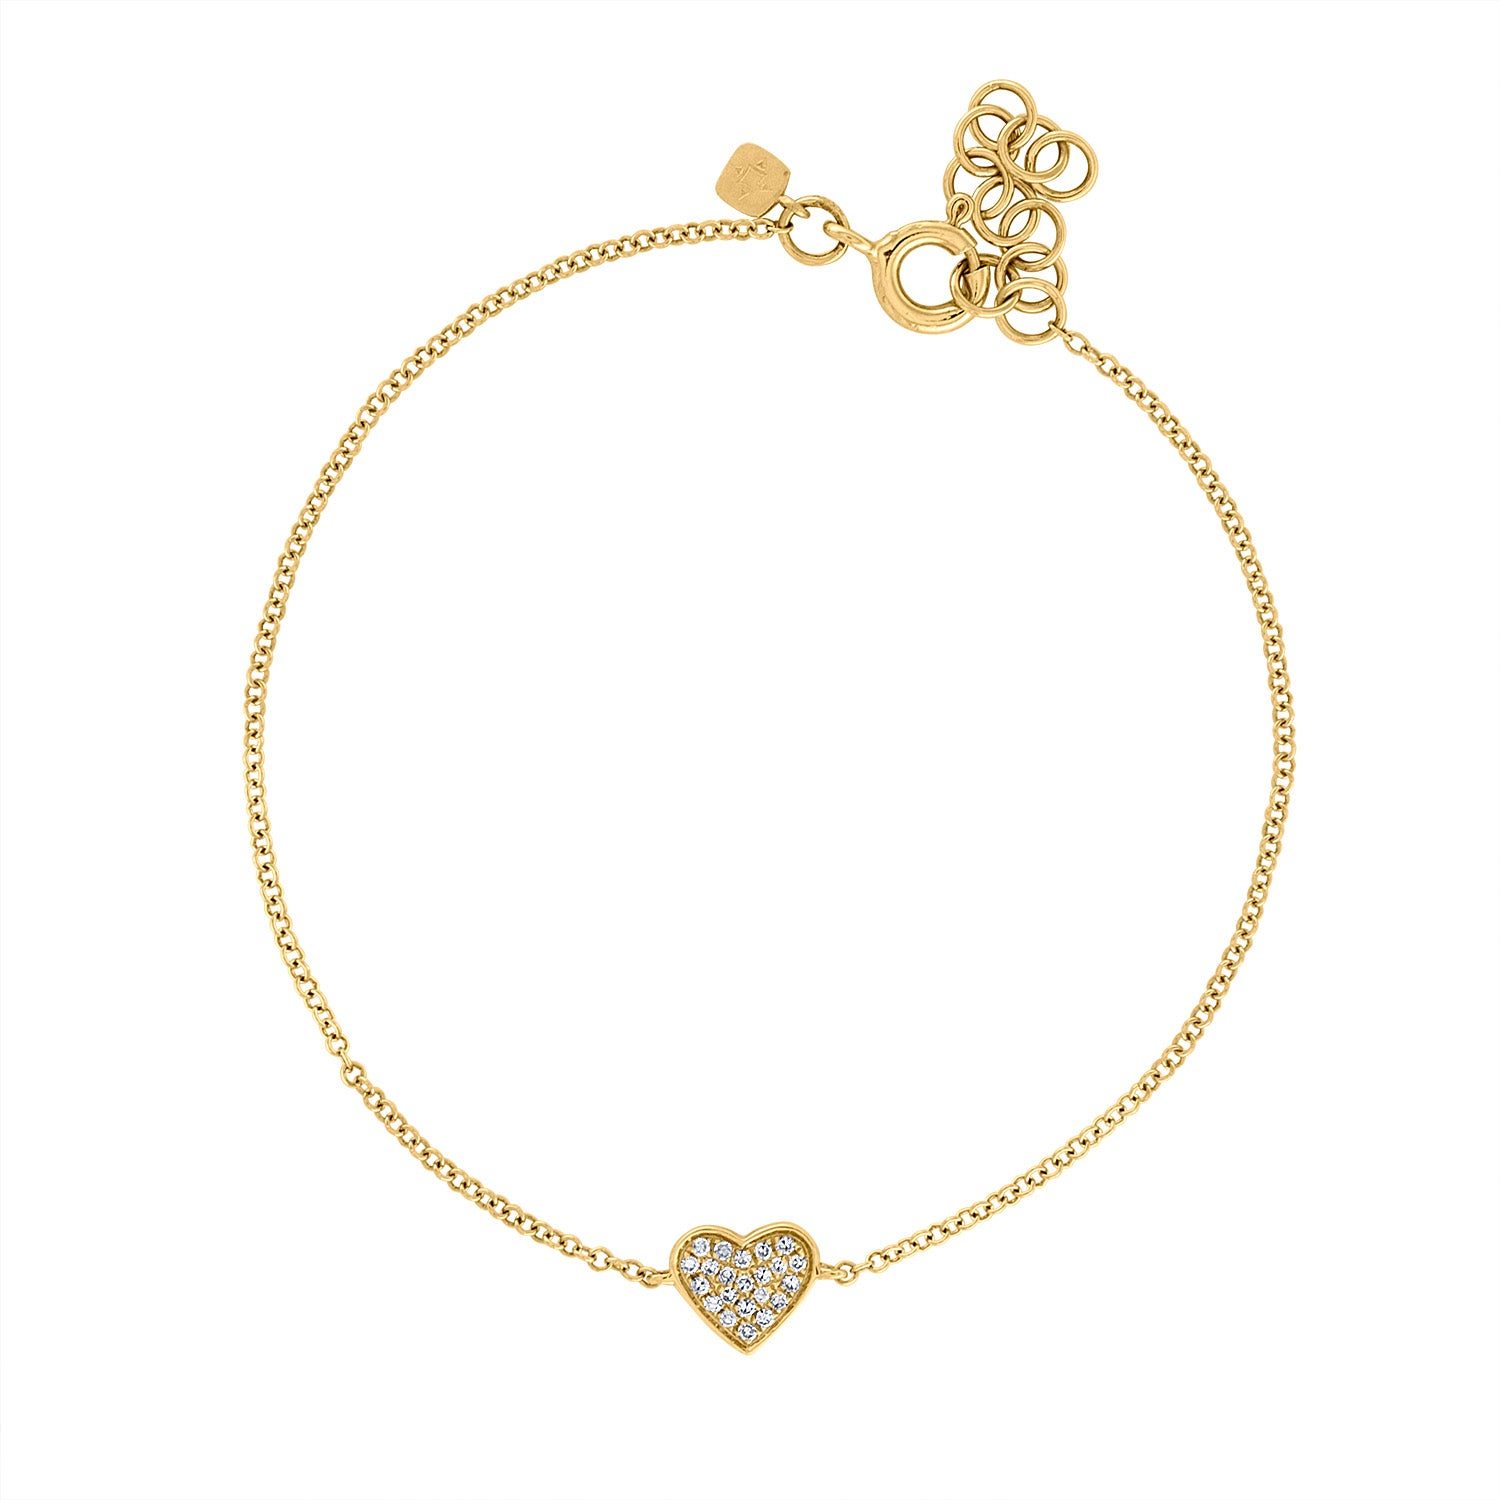 14KT GOLD DIAMOND PAVE HEART BRACELET